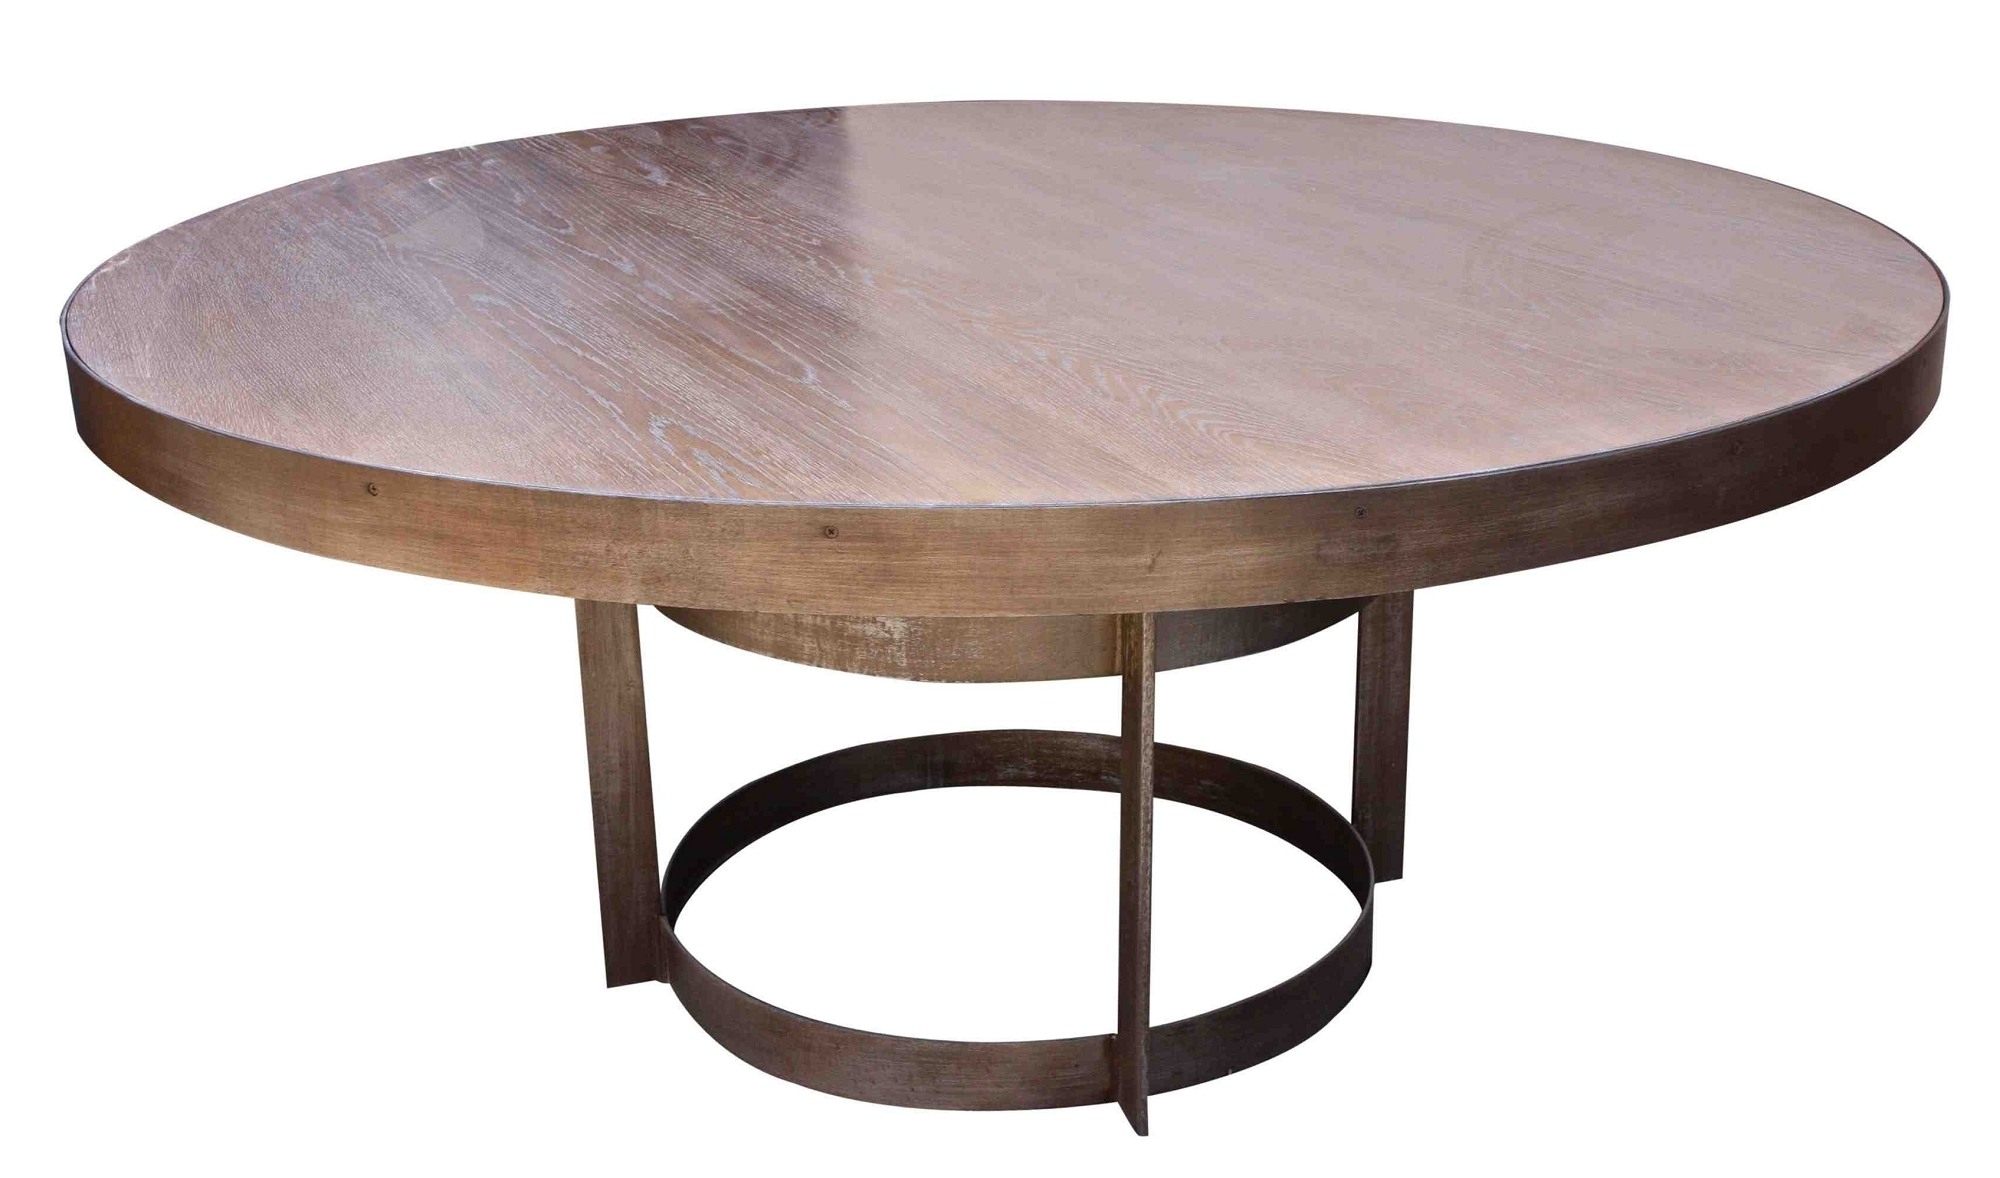 Dining Tables : Square Pedestal Table 54 Inch Round Dining, 54 Round In Newest Caira Black Round Dining Tables (View 11 of 25)